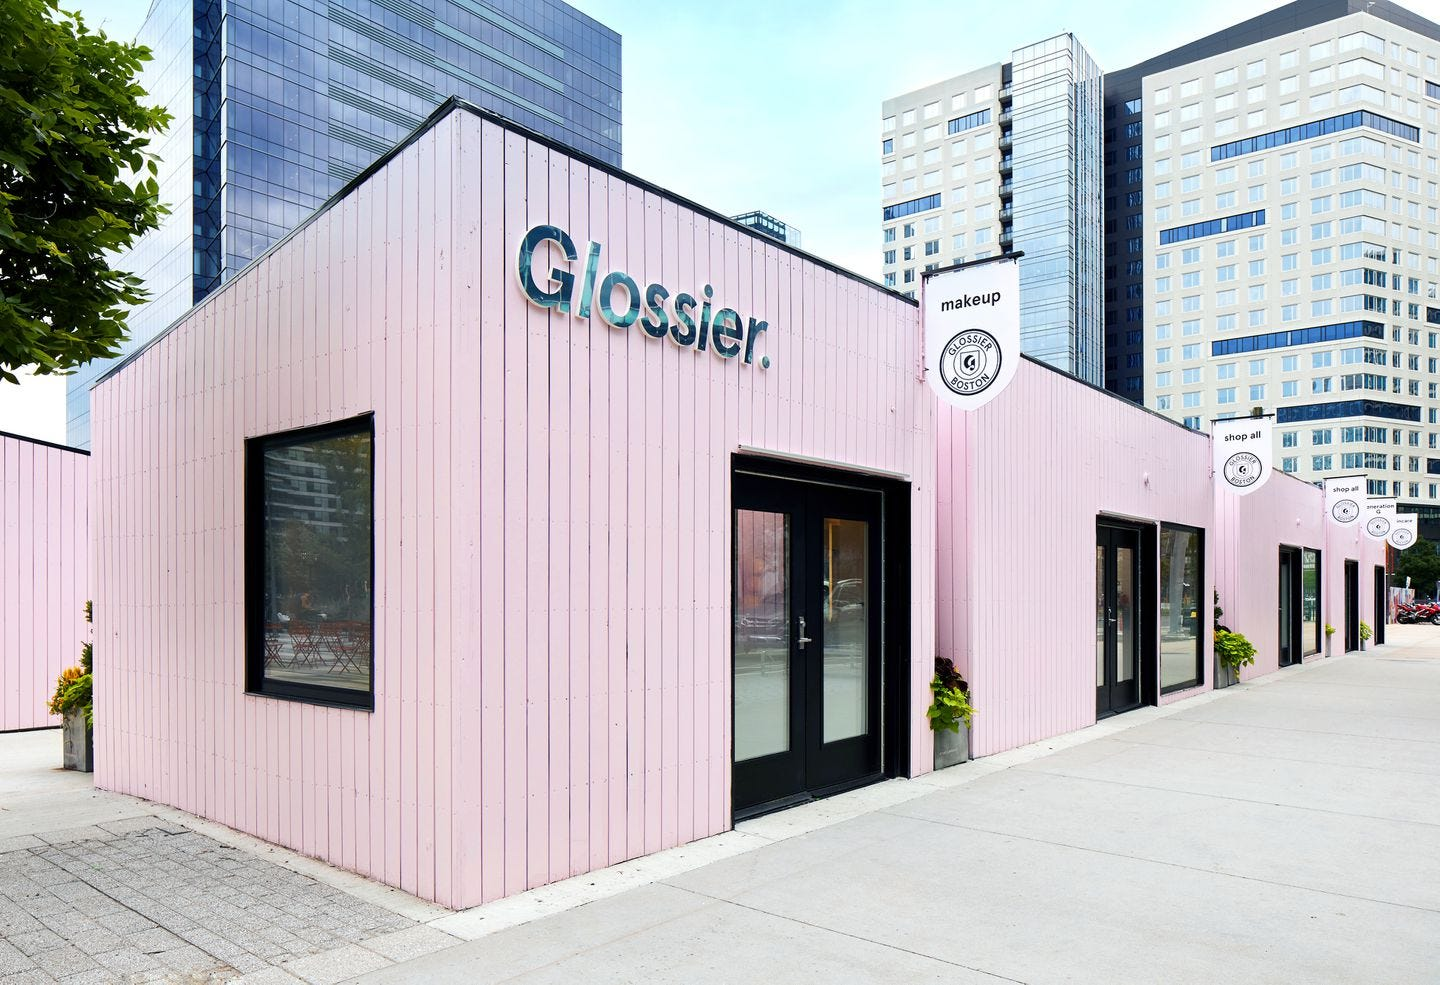 Glossier is opening a pop-up makeup shop in Boston - The Boston Globe